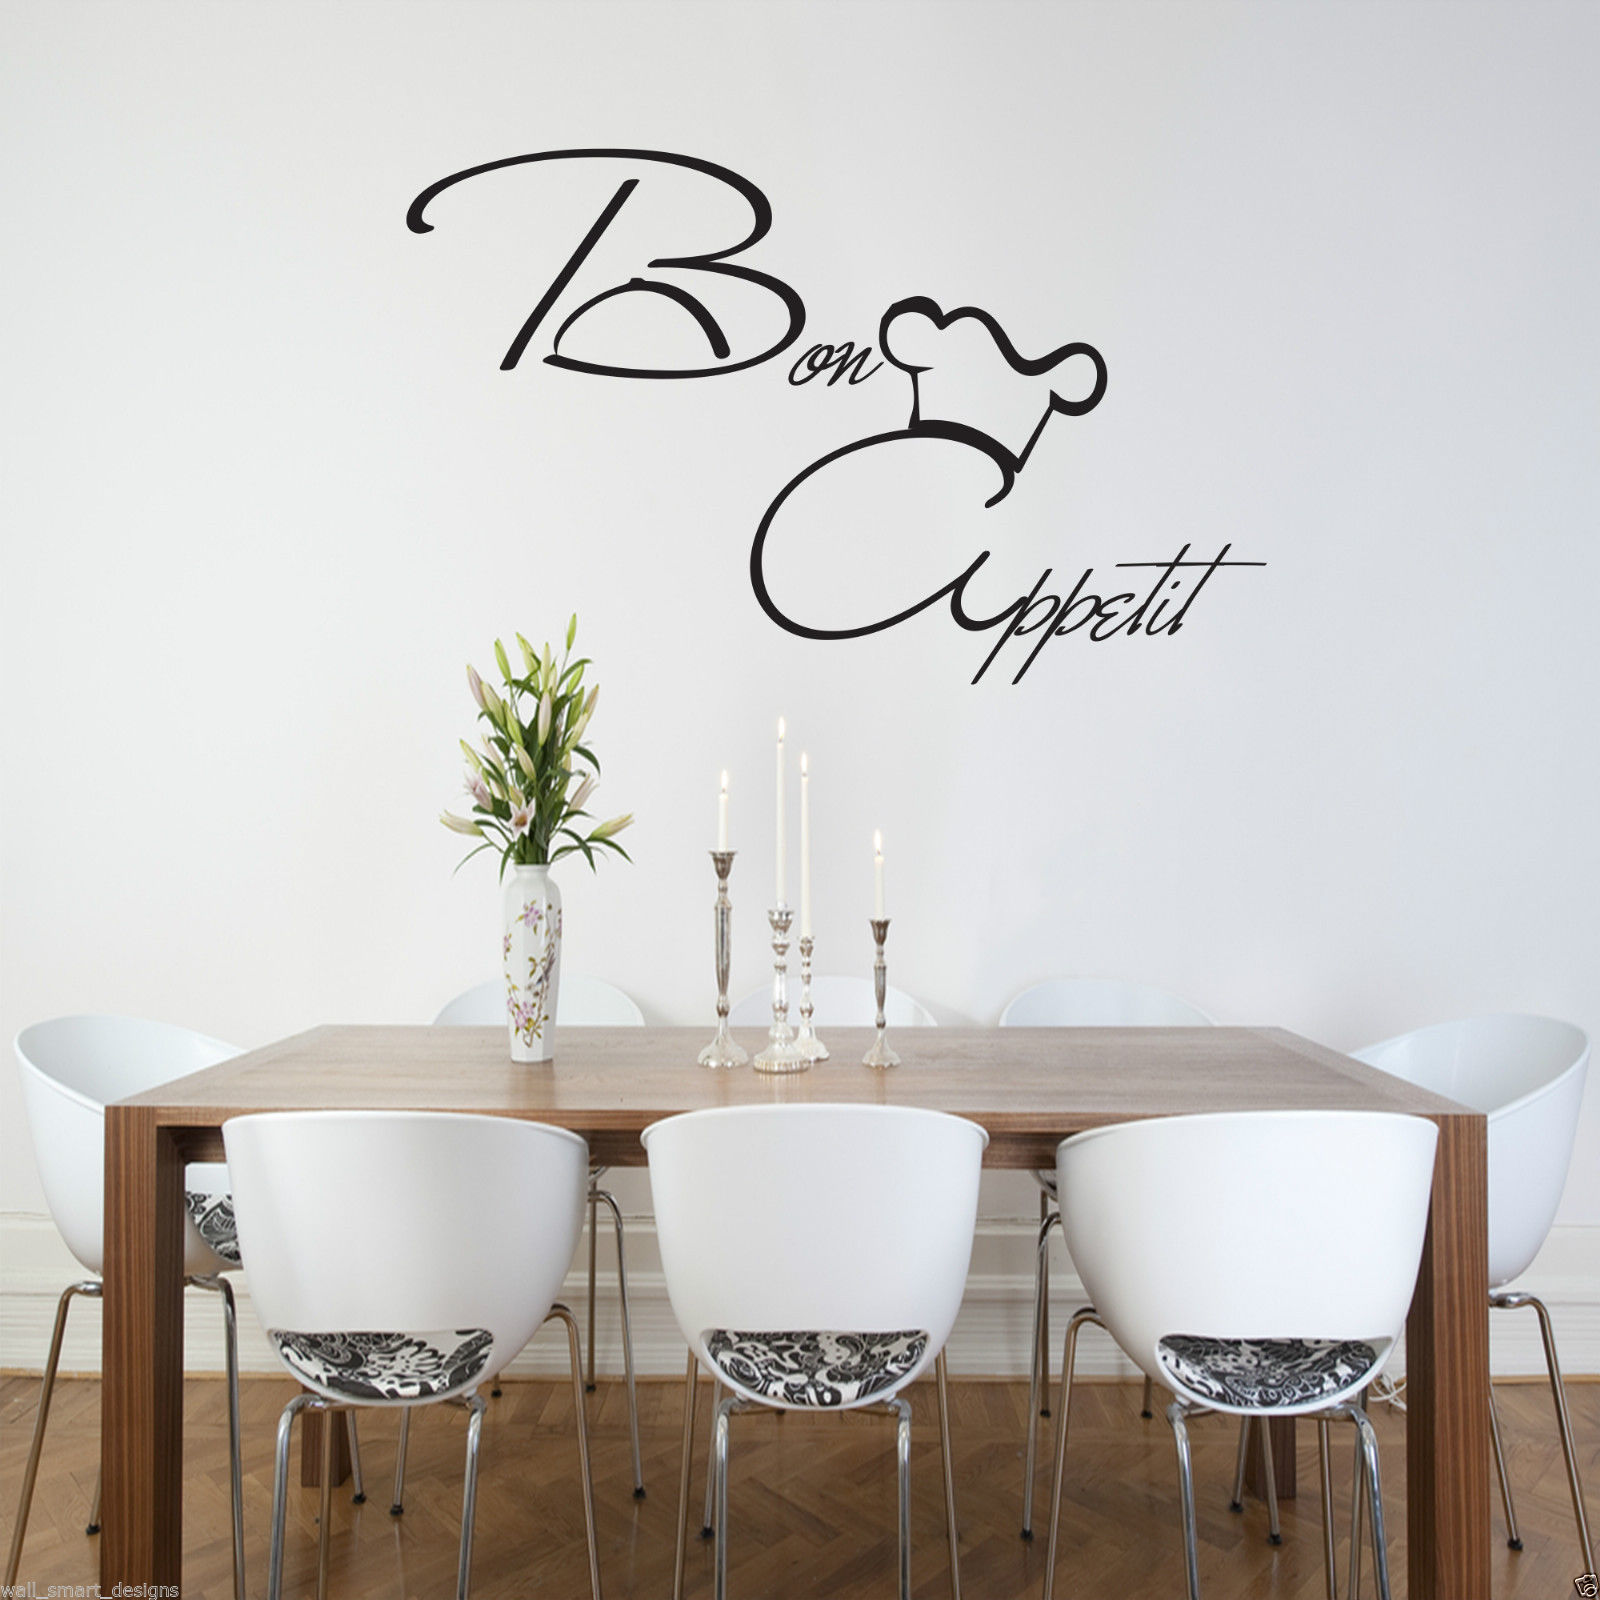 kitchen vinyl marble table set bon appetit wall art sticker quote decal mural stencil transfer